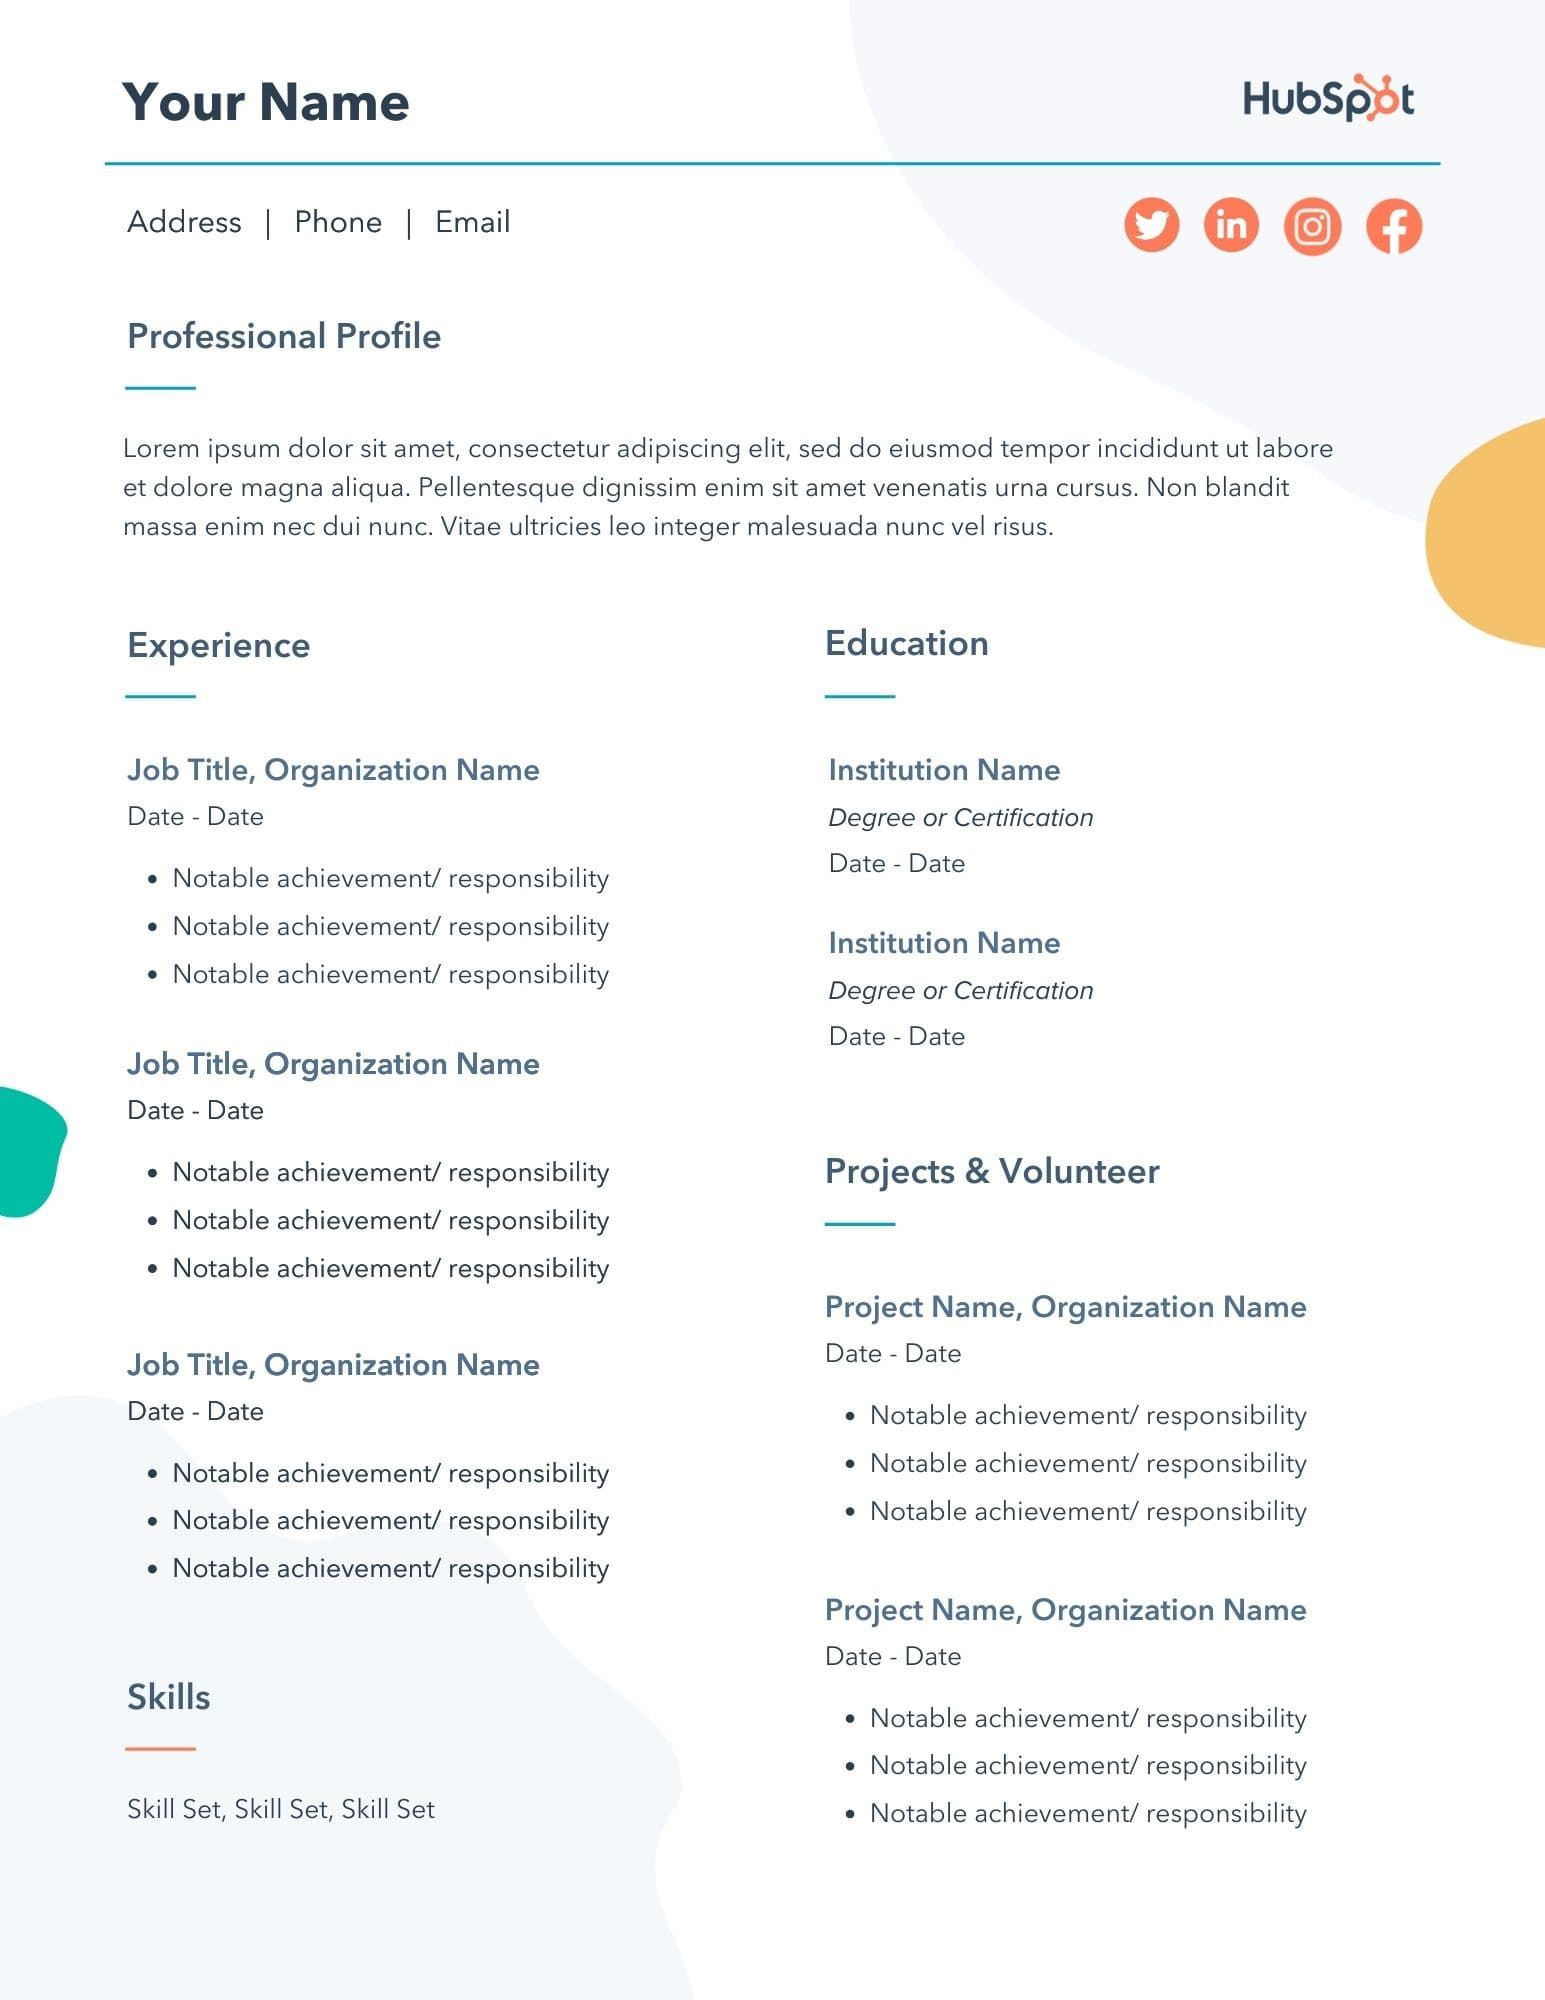 free resume templates for microsoft word to make your own sample professional template Resume Free Sample Professional Resume Template